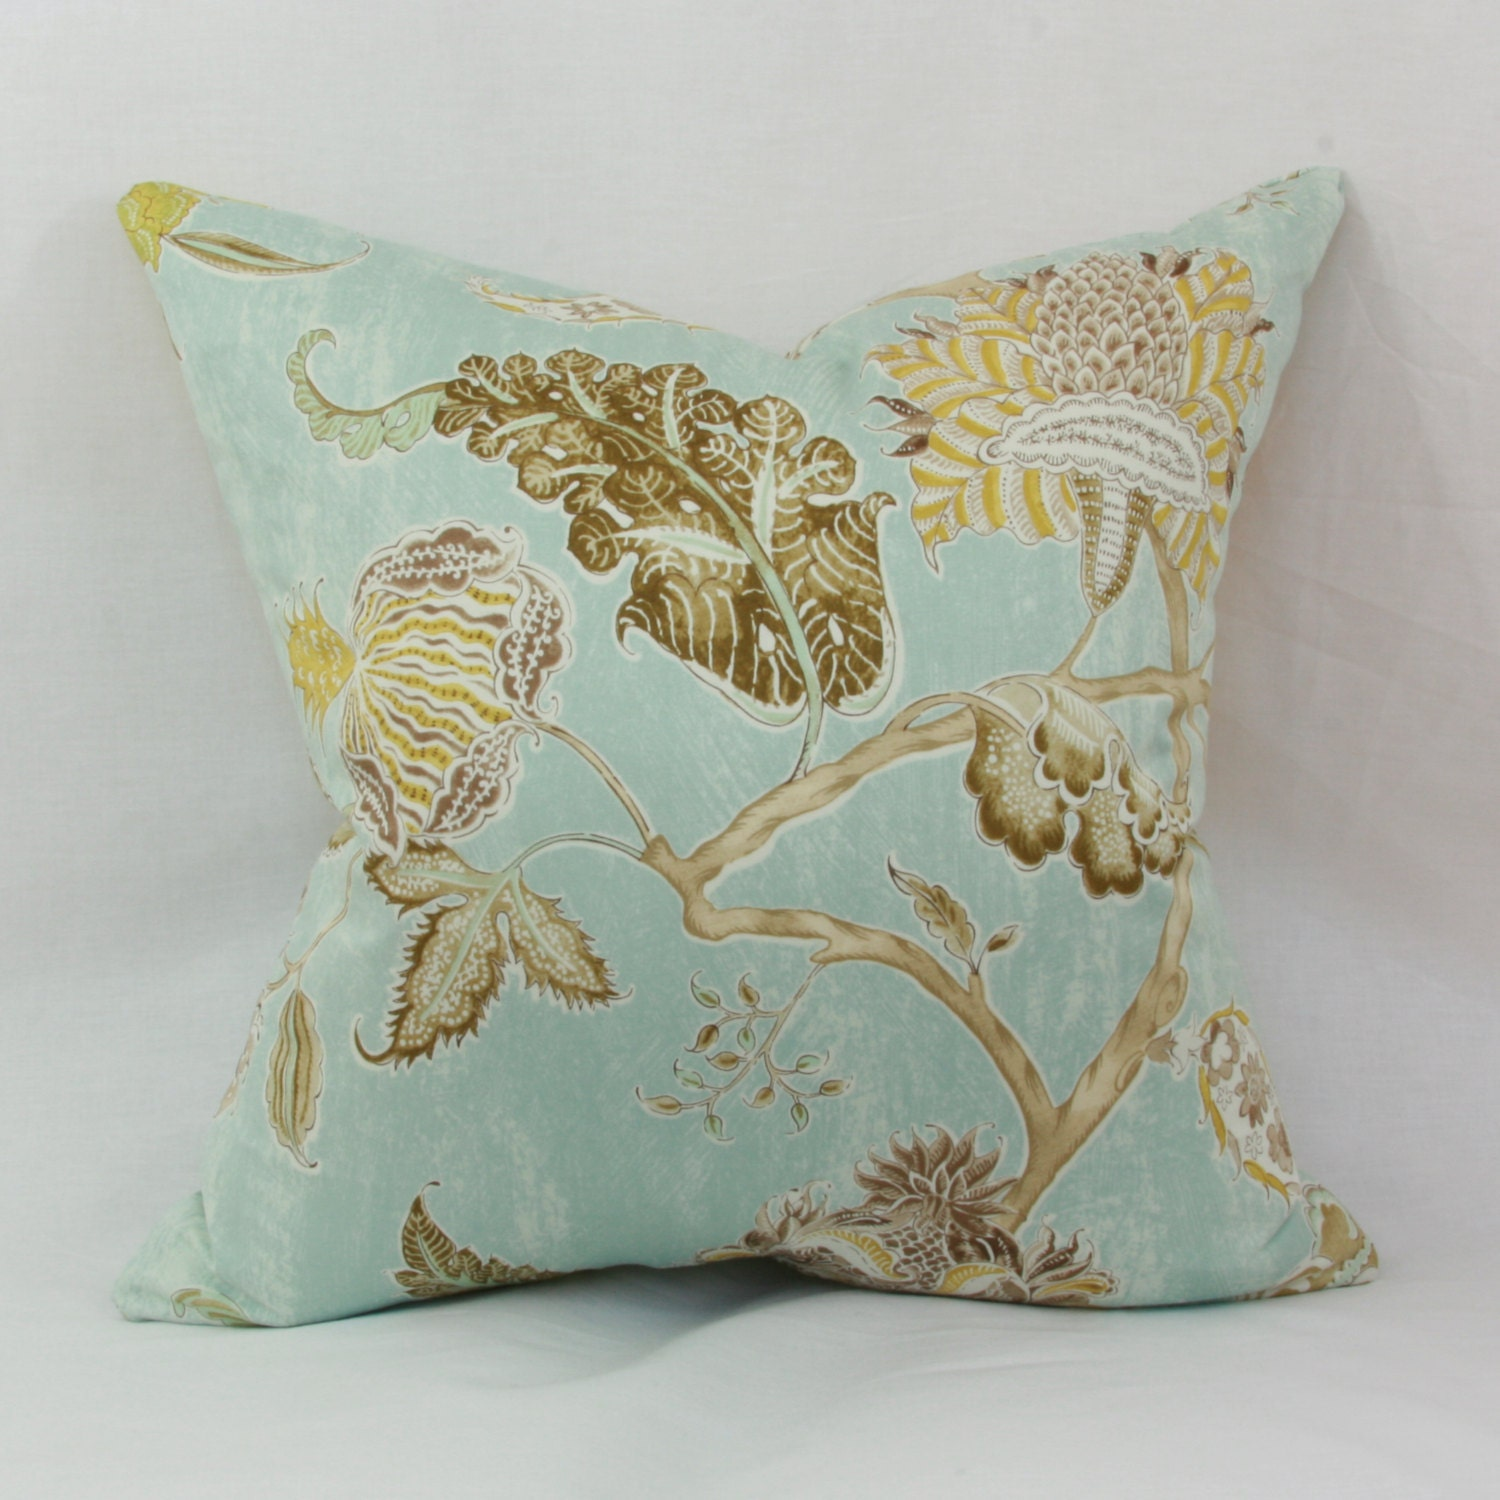 Spa Blue Throw Pillow Cover : Spa blue floral decorative throw pillow cover. 20 by JoyWorkshoppe